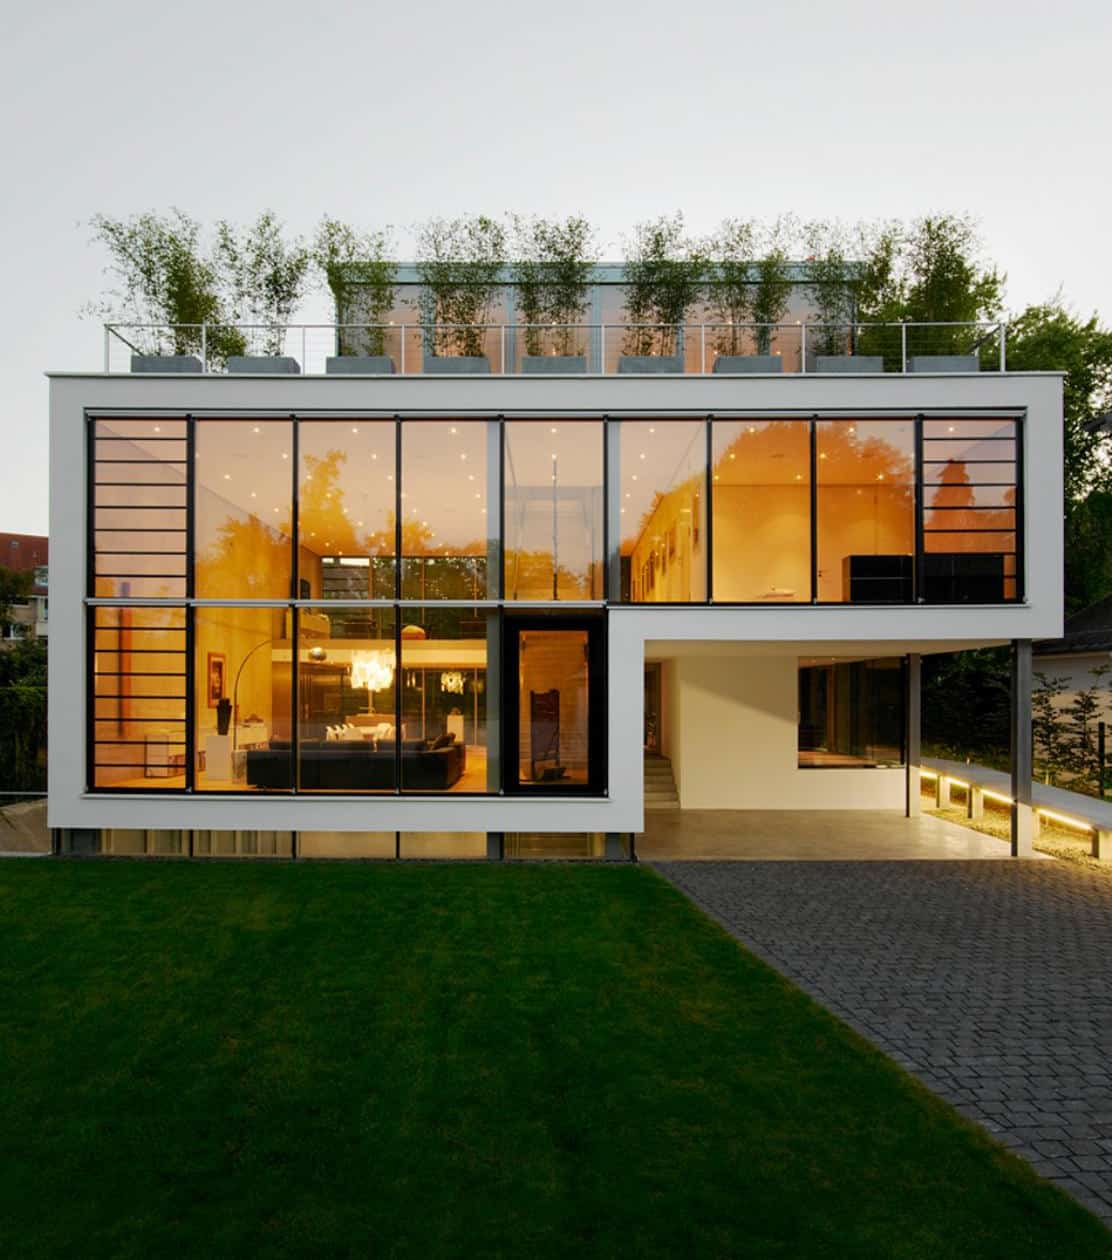 Energy Optimized House With Roof Terrace Louver Windows